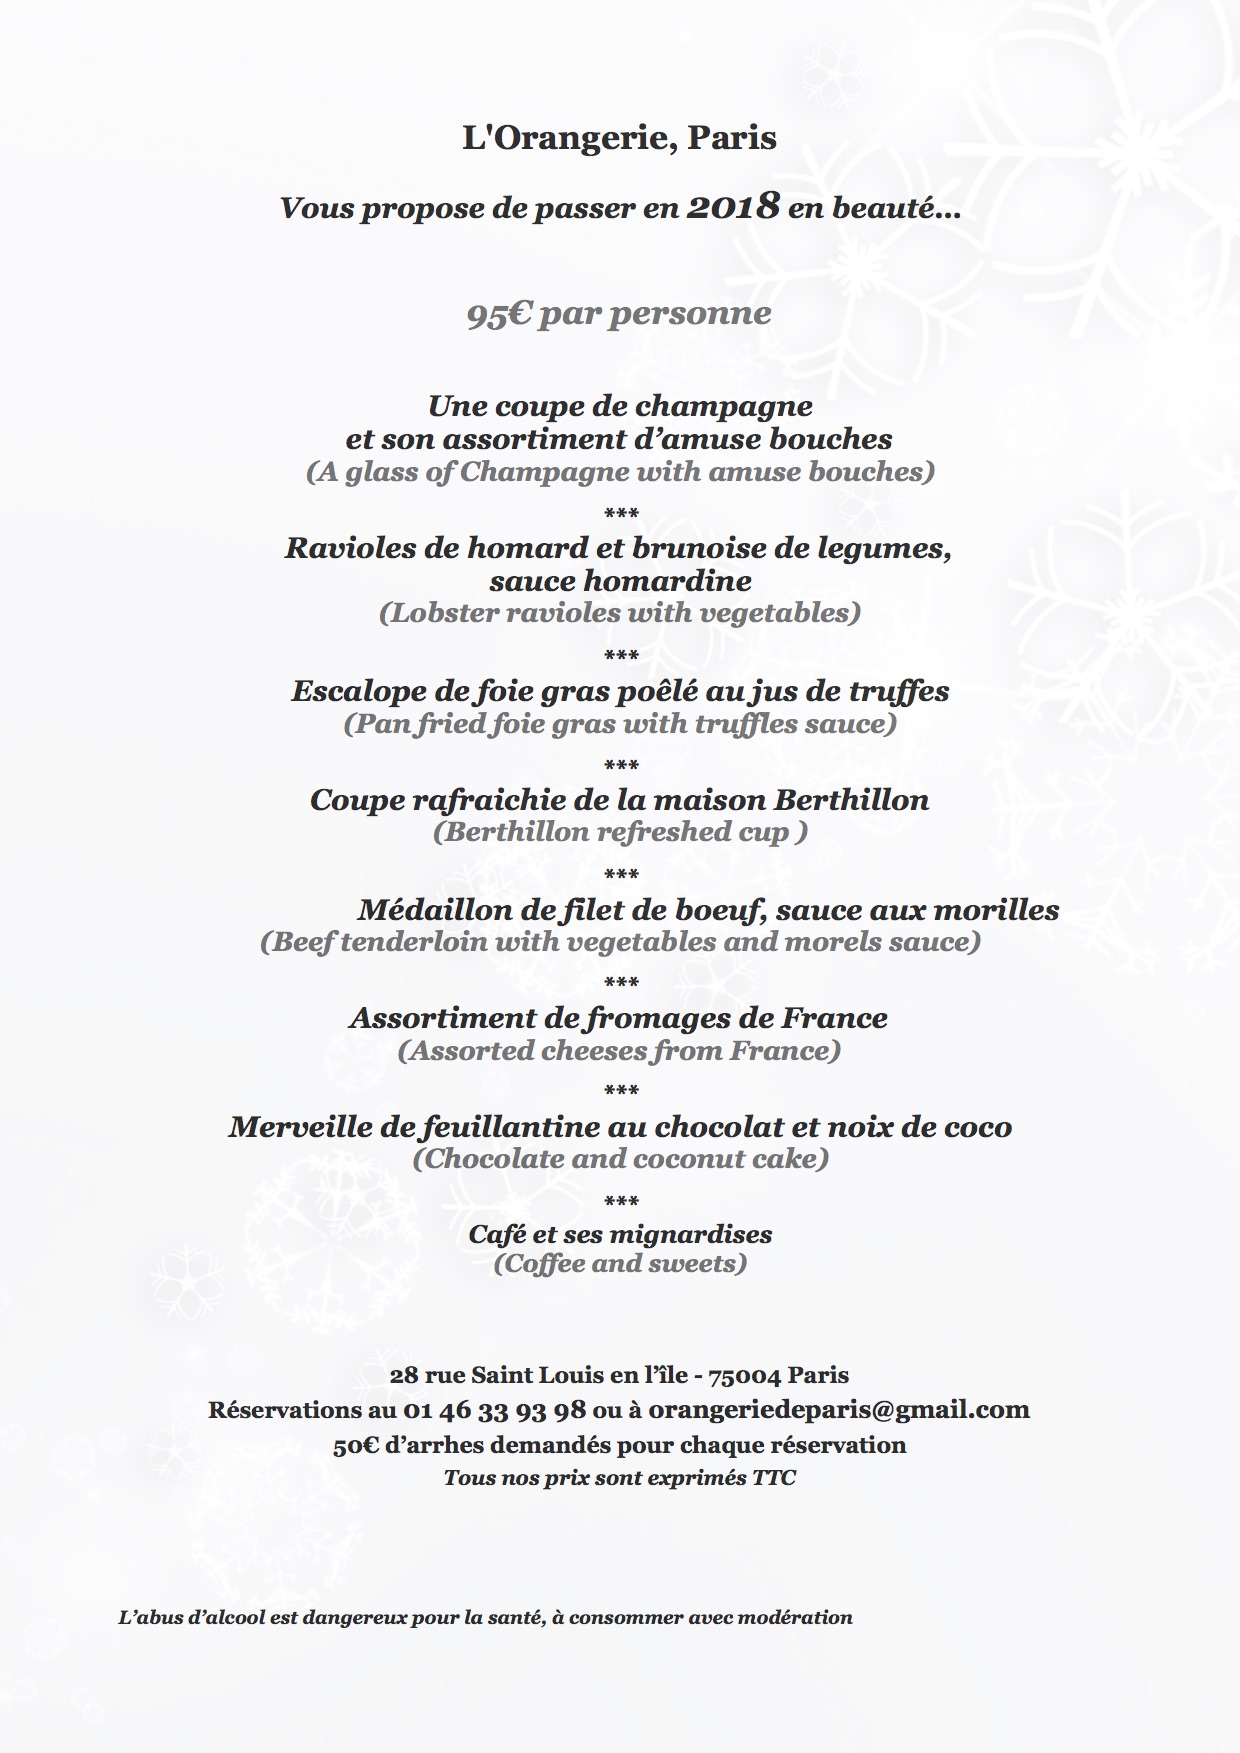 Orangerie menu nouvel an 2018 - copie